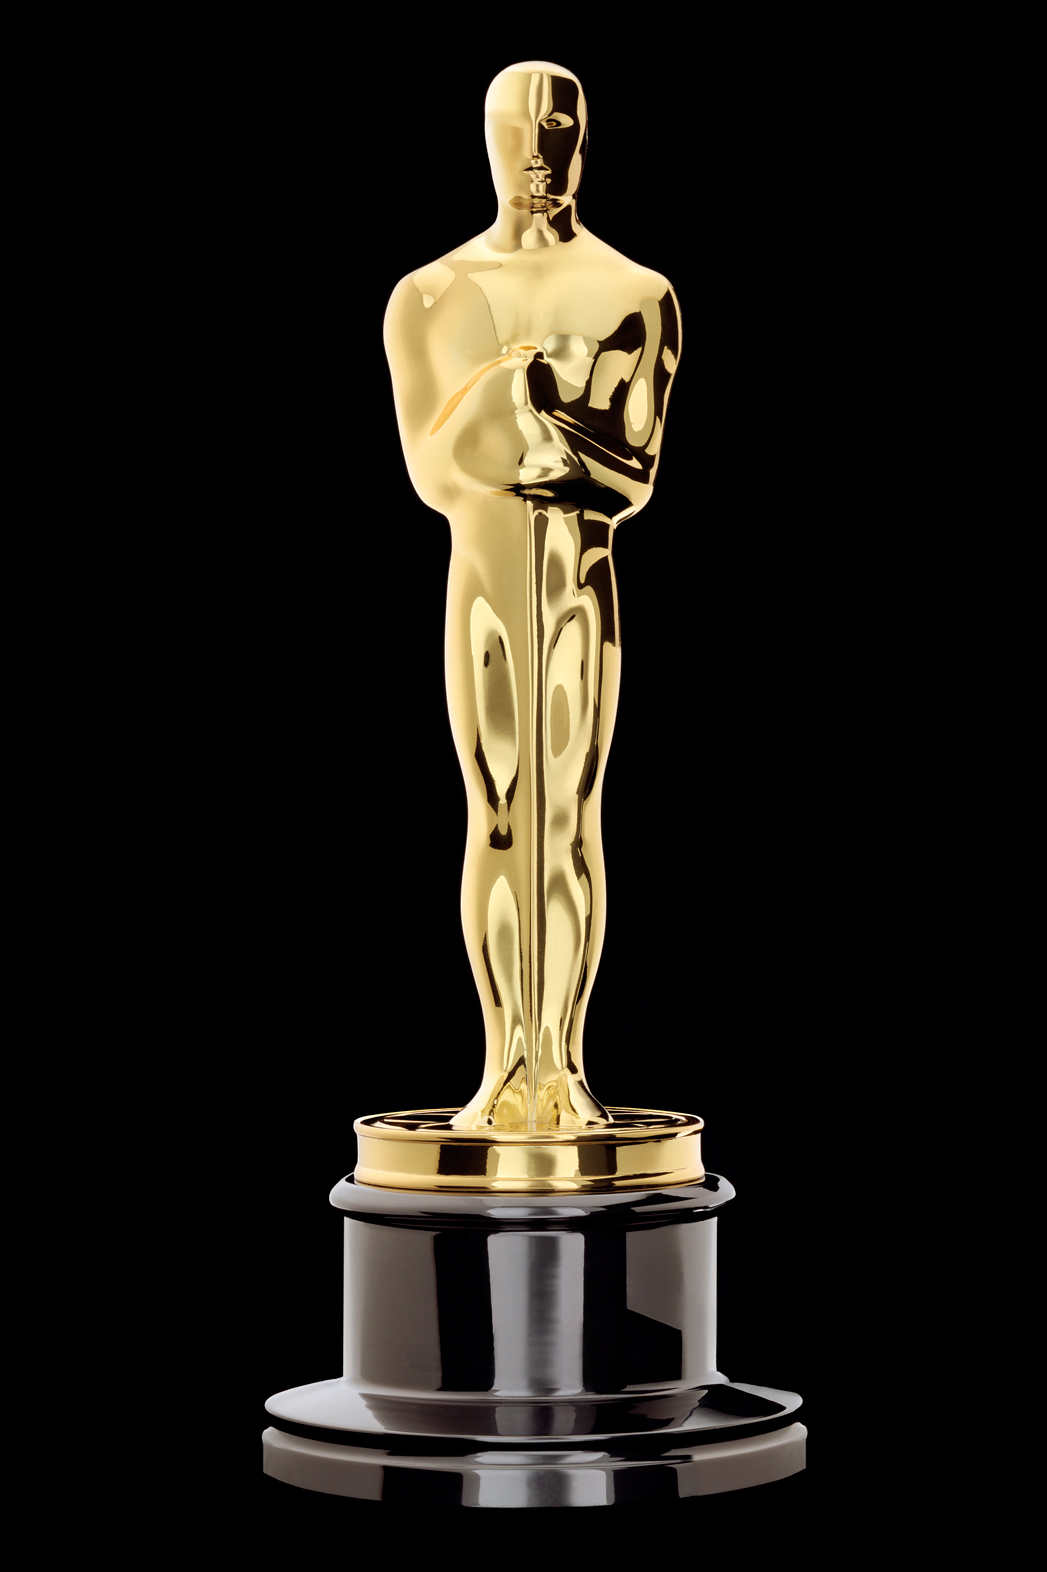 "The Oscar statuette is the copyrighted property of the Academy of Motion Picture Arts and Sciences, and the statuette and the phrases ""Academy Award(s)"" and ""Oscar(s)"" are registered trademarks under the laws of the United States and other countries. All published representations of the Award of Merit statuette, including photographs, drawings and other likenesses, must include the legend ©A.M.P.A.S.® to provide notice of copyright, trademark and service mark registration. Permission is hereby granted for use of the representation of the statuette in newspapers, periodicals and on television only in legitimate news articles or feature stories which refer to the annual Academy Awards as an event, or in stories or articles which refer to the Academy as an organization or to specific achievements for which the Academy Award has been given. Its use and any other use is subject to the ""Legal Regulations for Using Intellectual Properties of the Academy of Motion Picture Arts and Sciences"" published by the Academy. A copy of the ""Legal Regulations"" may be obtained from: Legal Rights Coordinator, Academy of Motion Picture Arts and Sciences, 8949 Wilshire Boulevard, Beverly Hills, California 90211; (310) 247-3000; or http://www.oscars.org/legal/preamble.html."